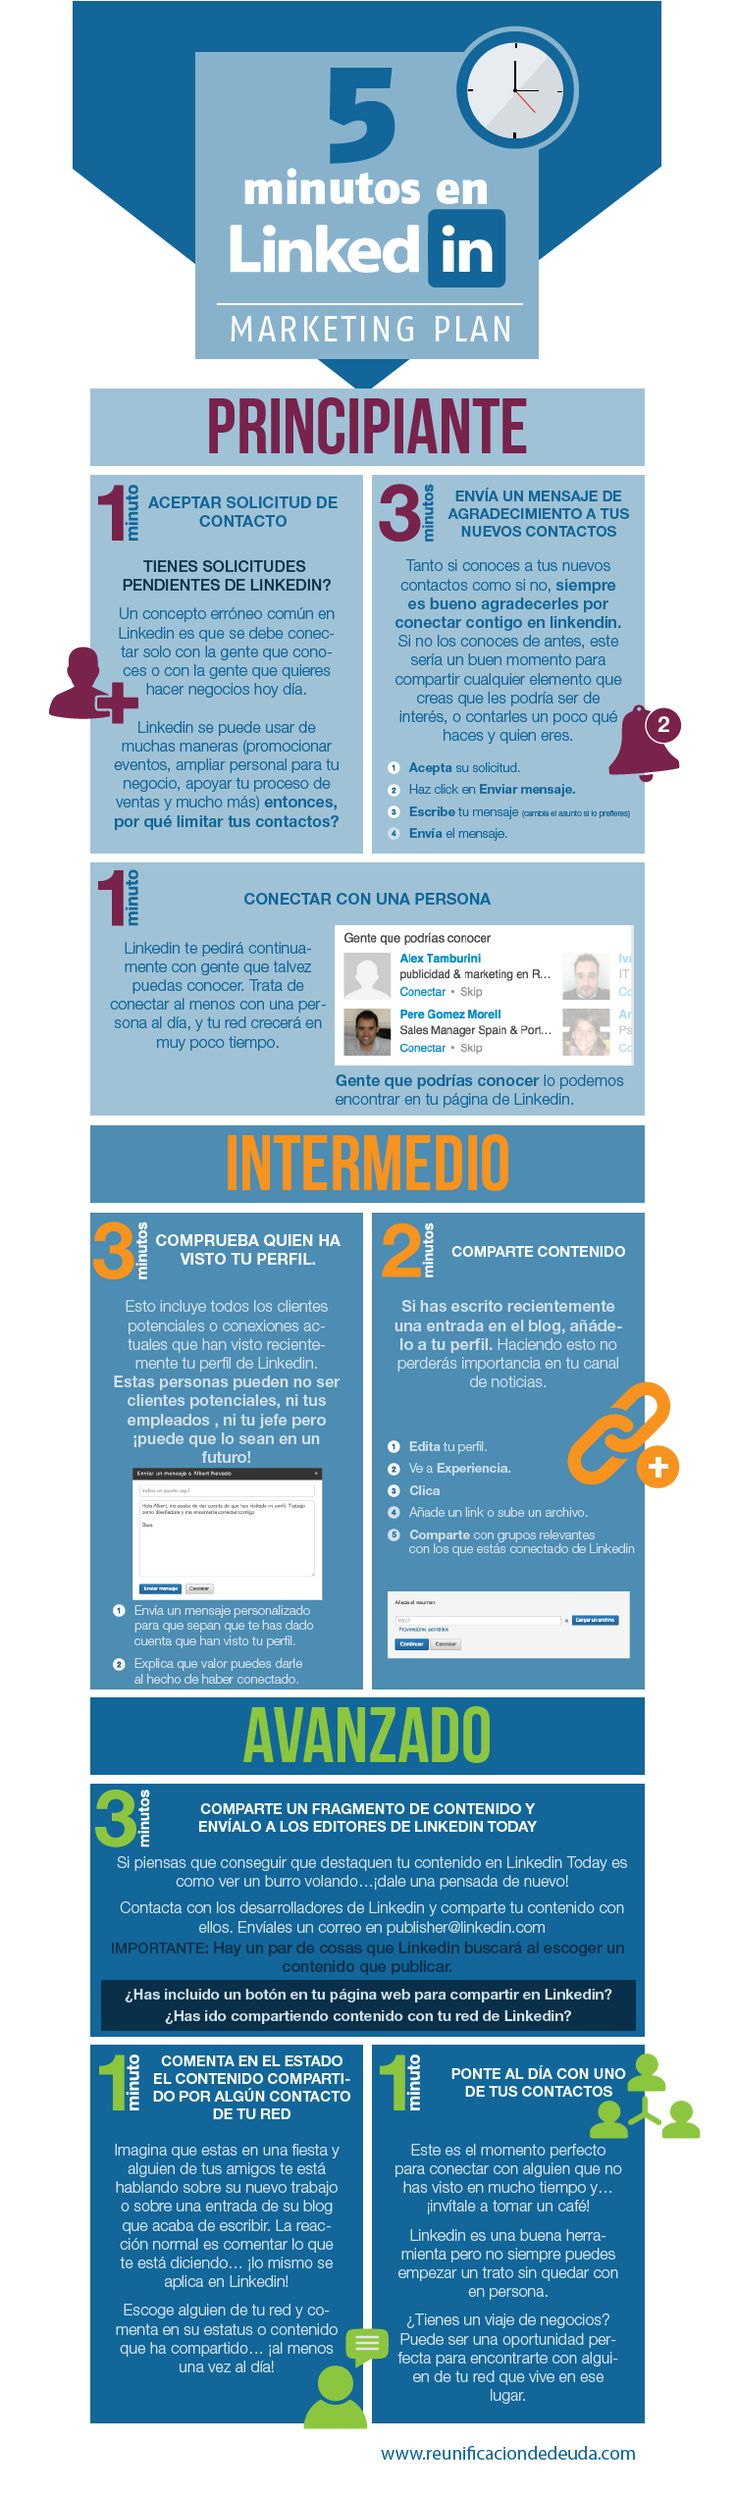 Amplia tu red de contactos en Linkedin en 5 minutos al día #infografia #marketing #socialmedia